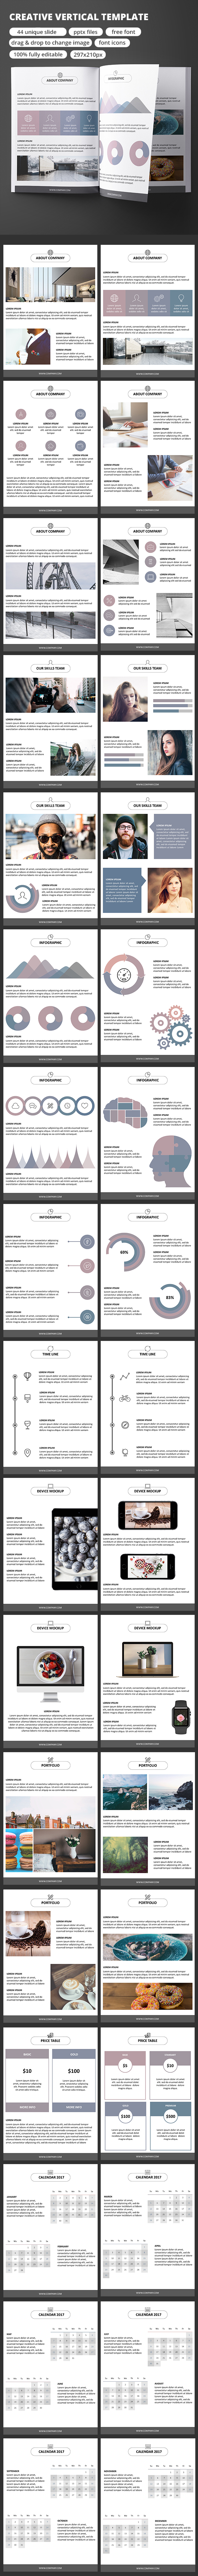 Creative vertical powerpoint template by dmitriynova graphicriver creative vertical powerpoint template business powerpoint templates toneelgroepblik Image collections